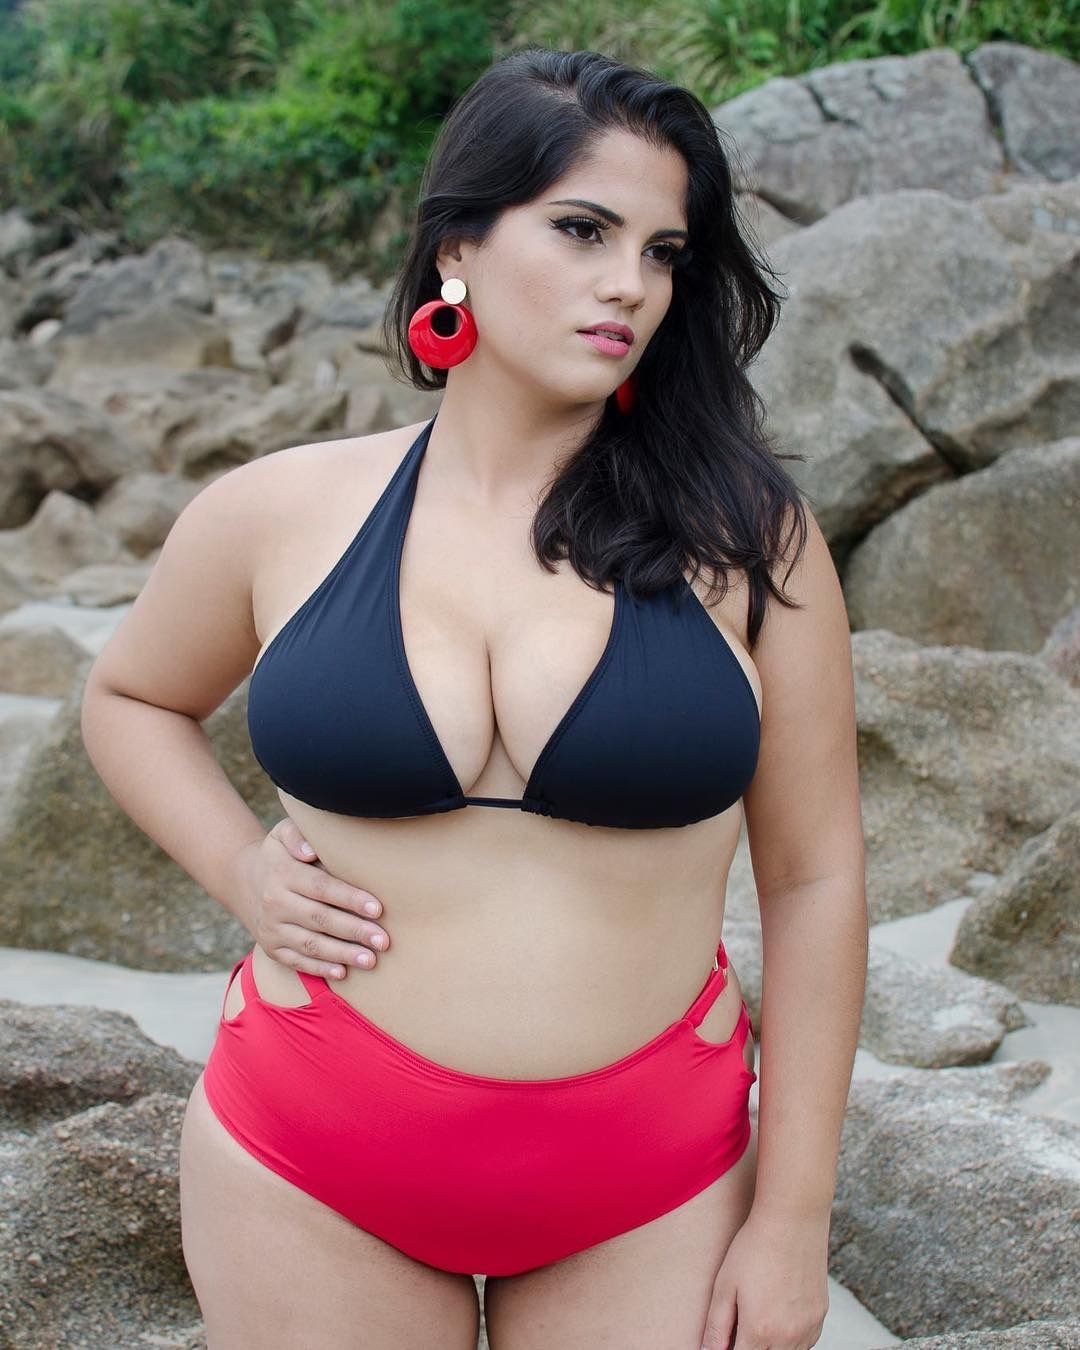 Something also chubby latinas in bikinis think, that